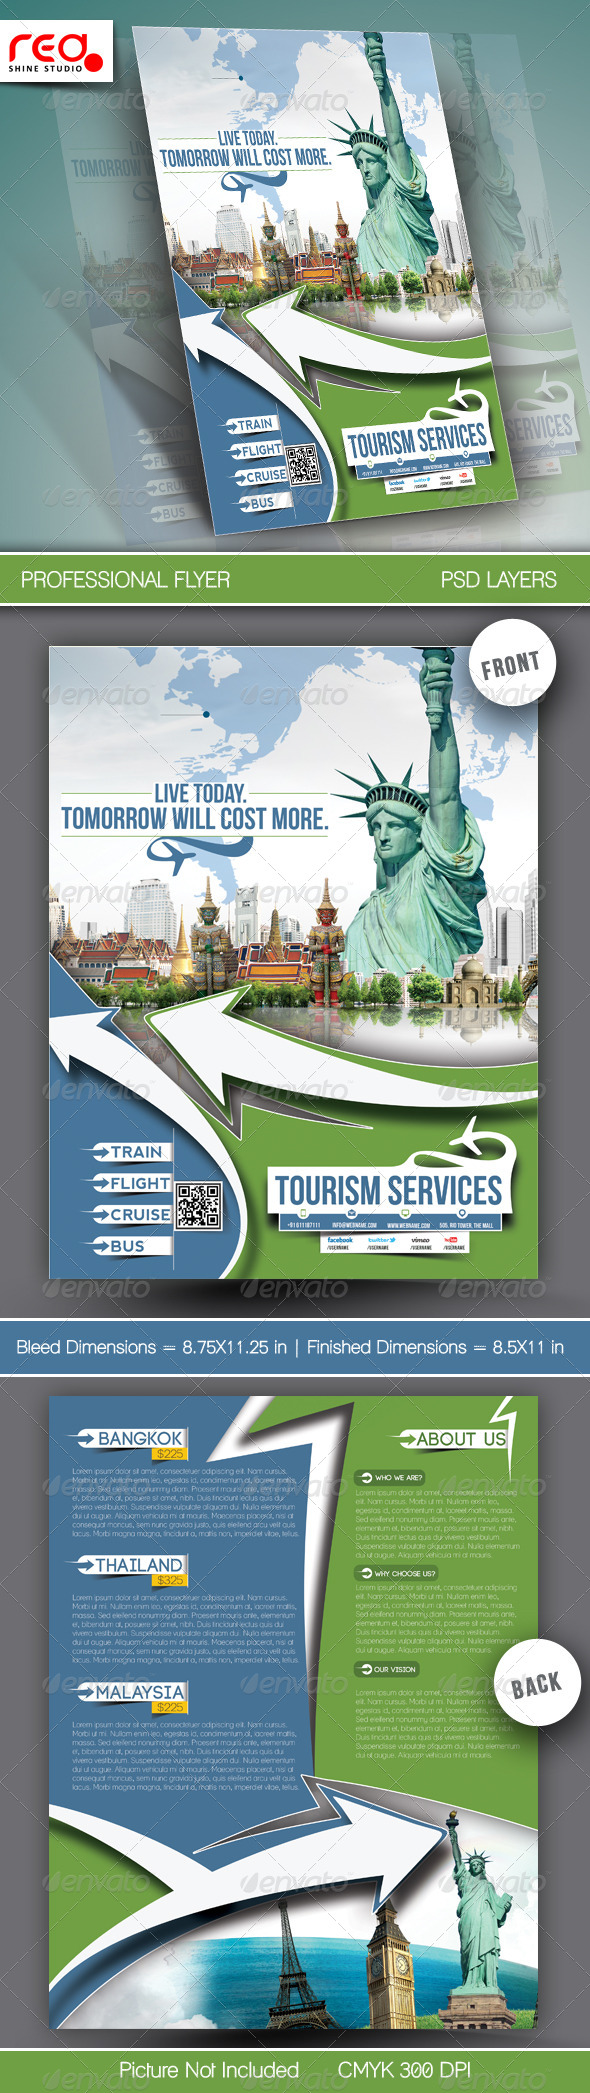 Travel Tours Flyer Template - Commerce Flyers